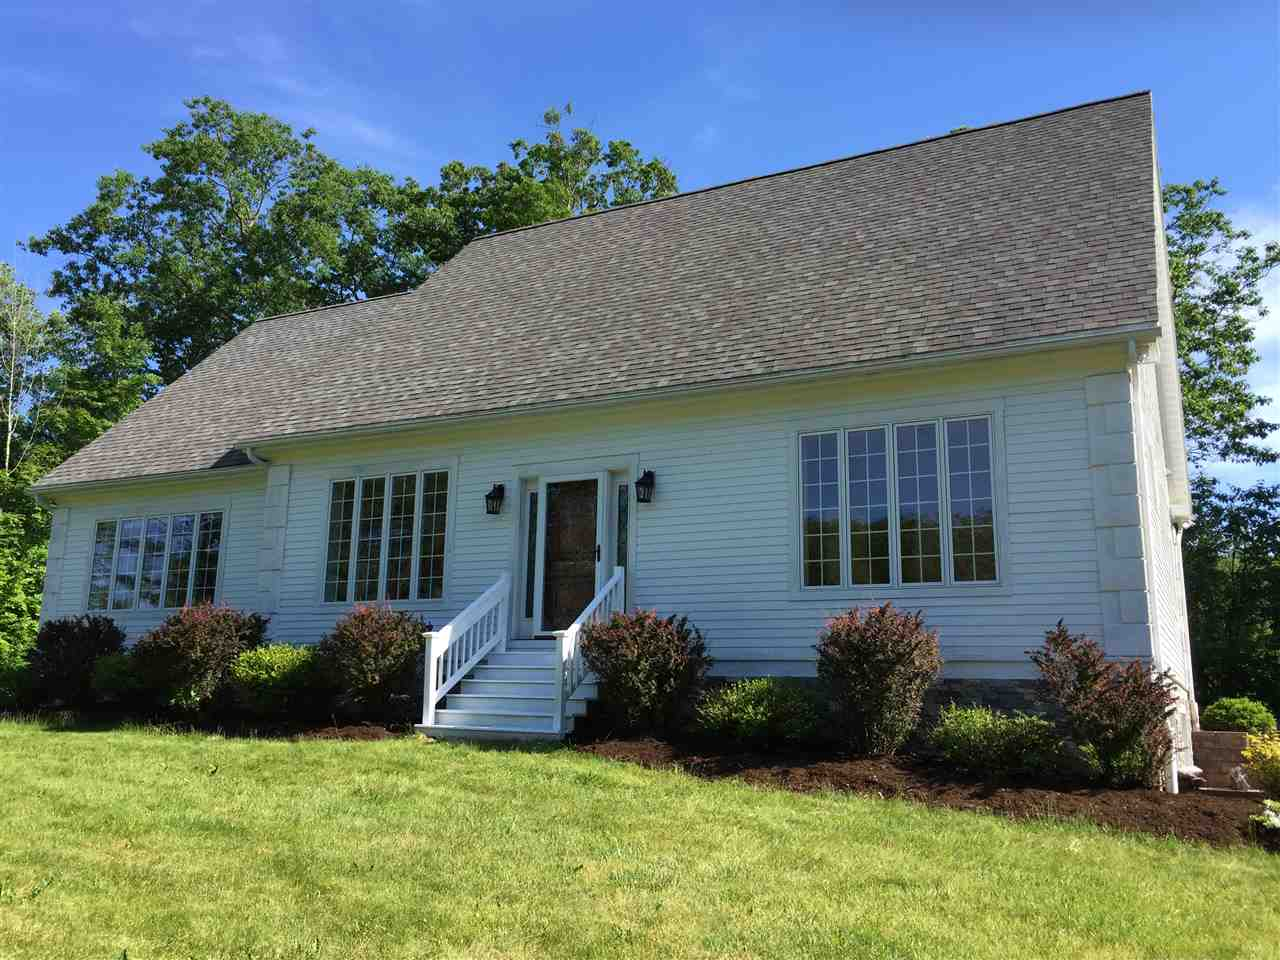 MLS 4761308: 176 Twin Brook Road, Chesterfield NH